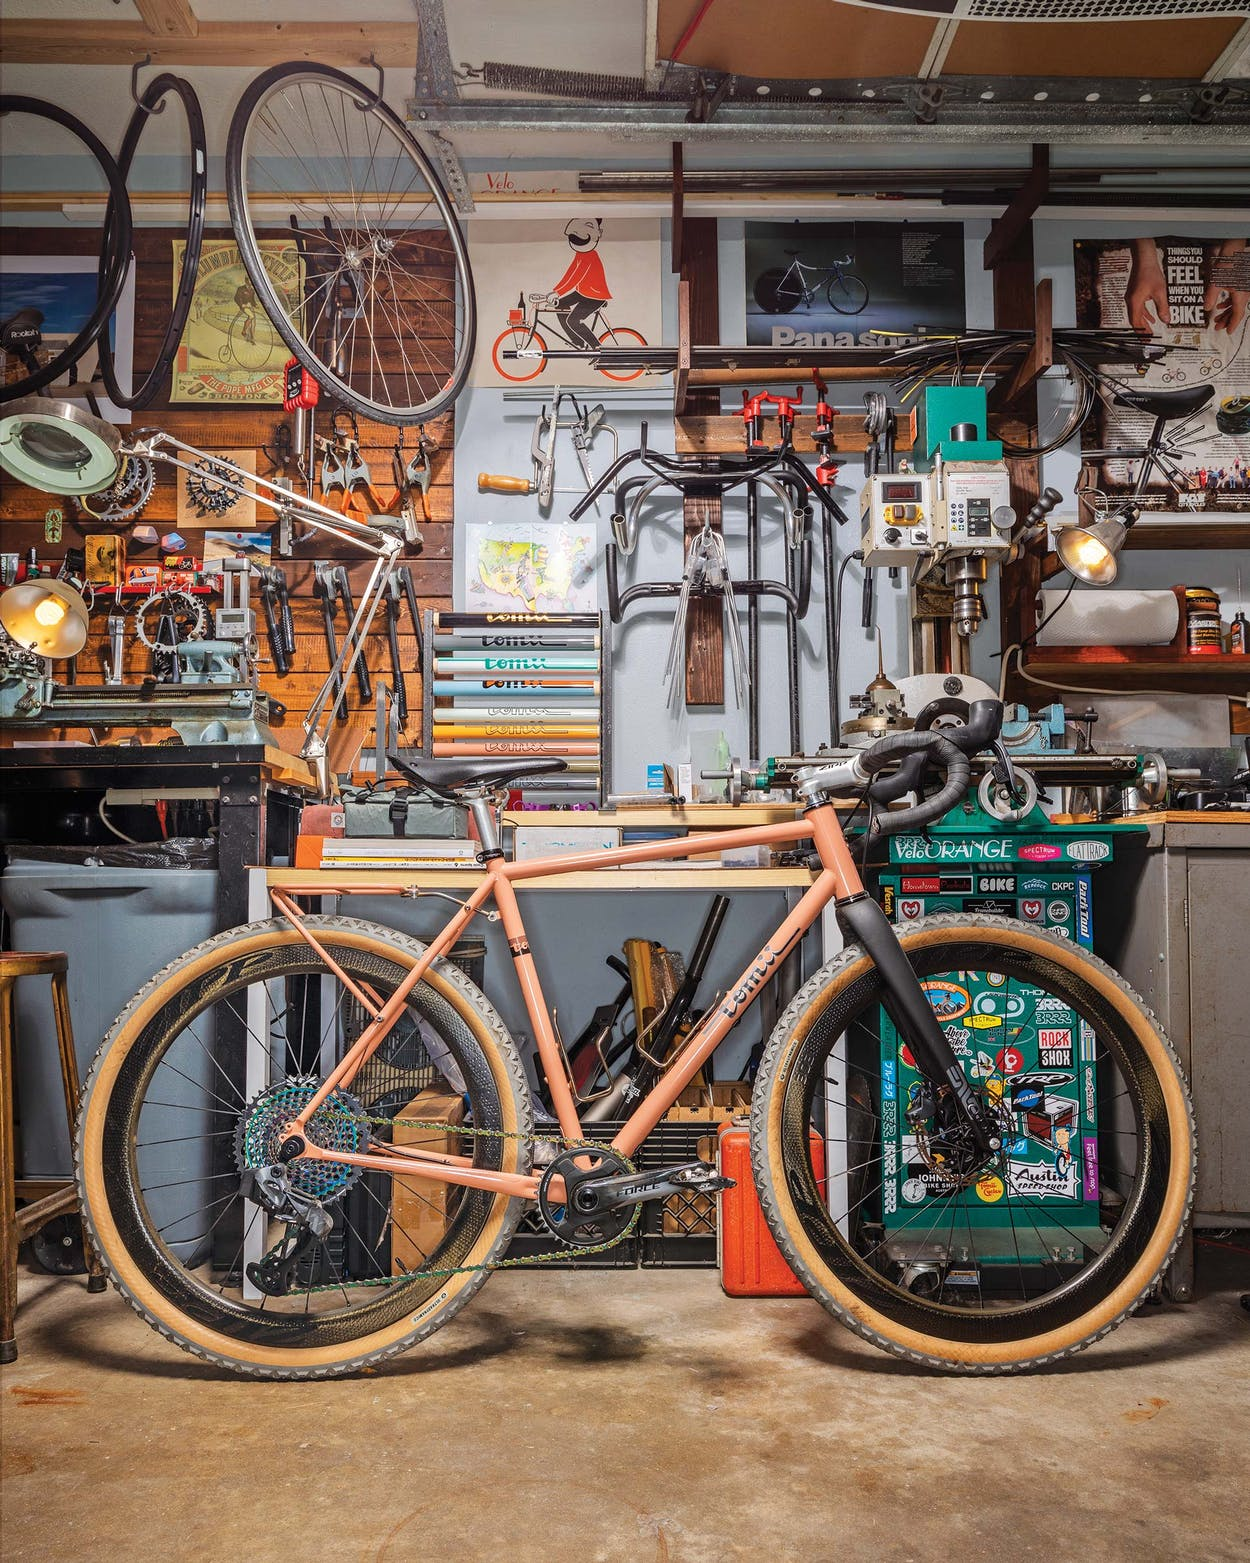 One of Tomii's finished Fat Canvas bicycle models.